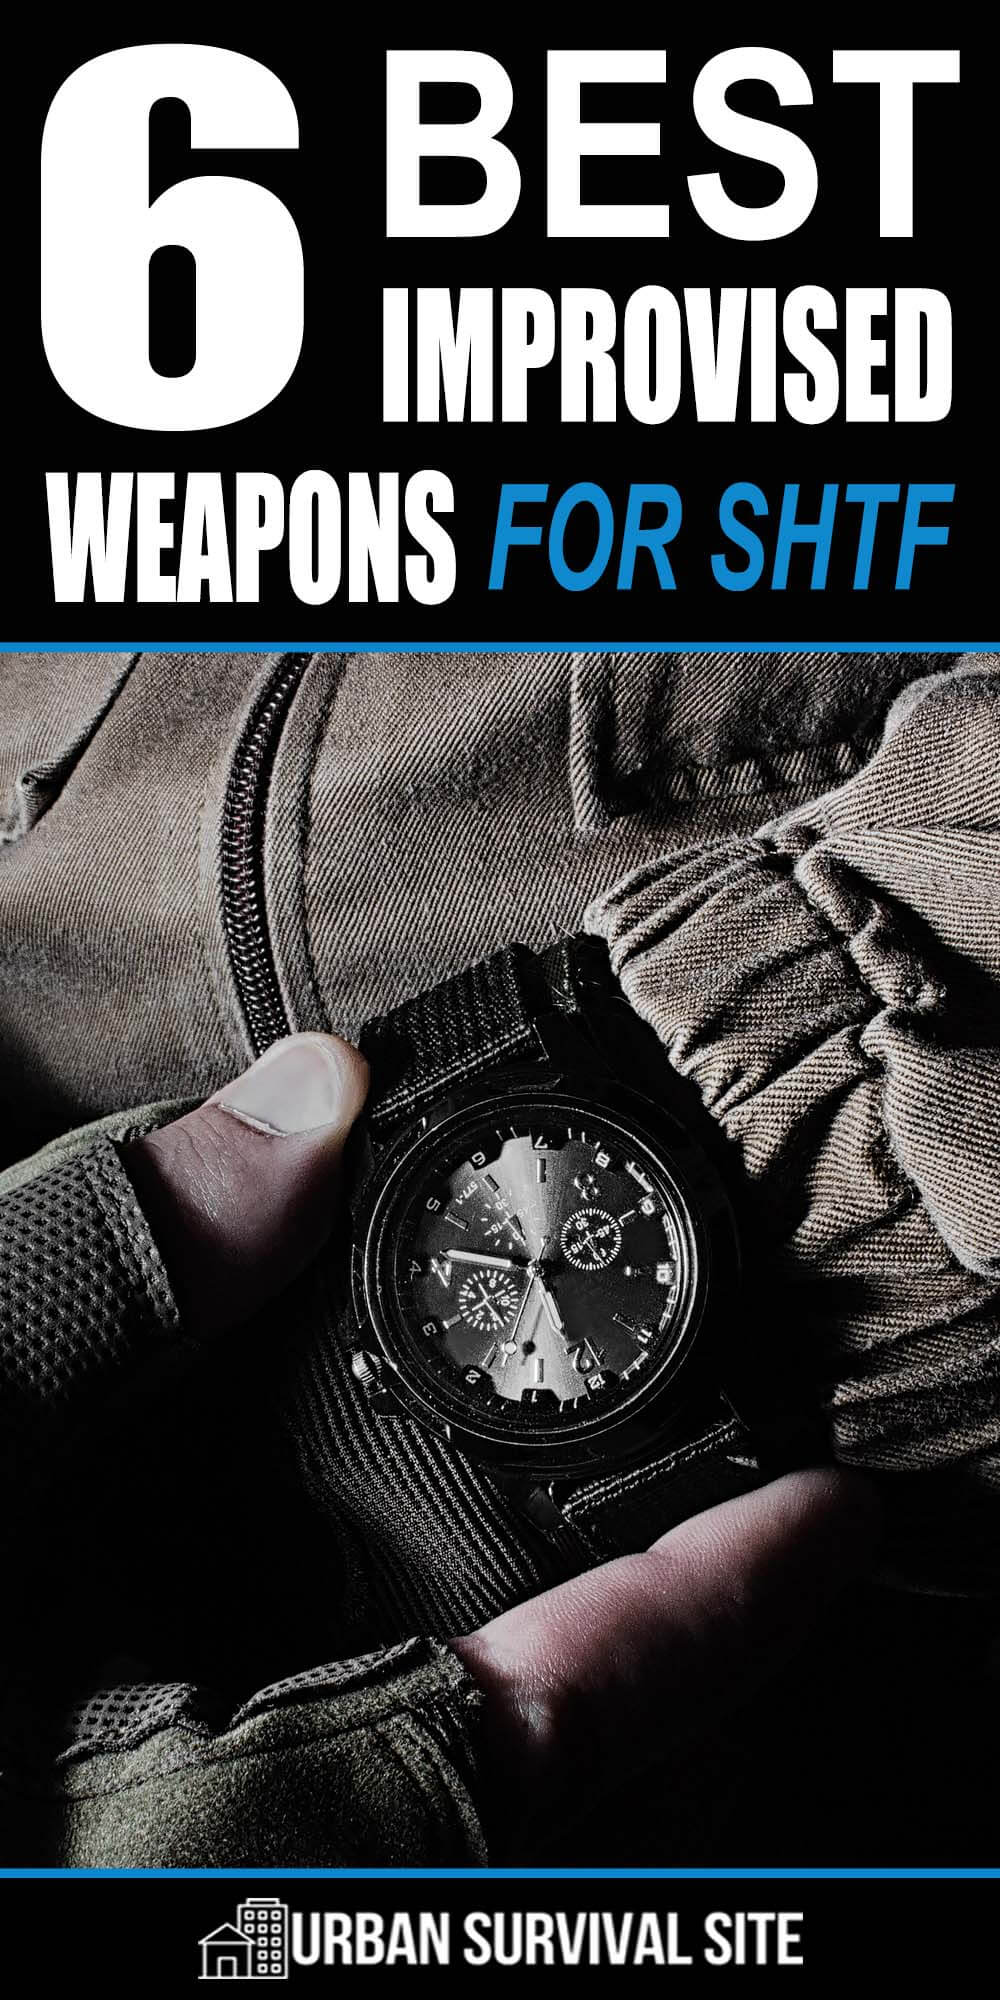 6 Best Improvised Weapons for SHTF